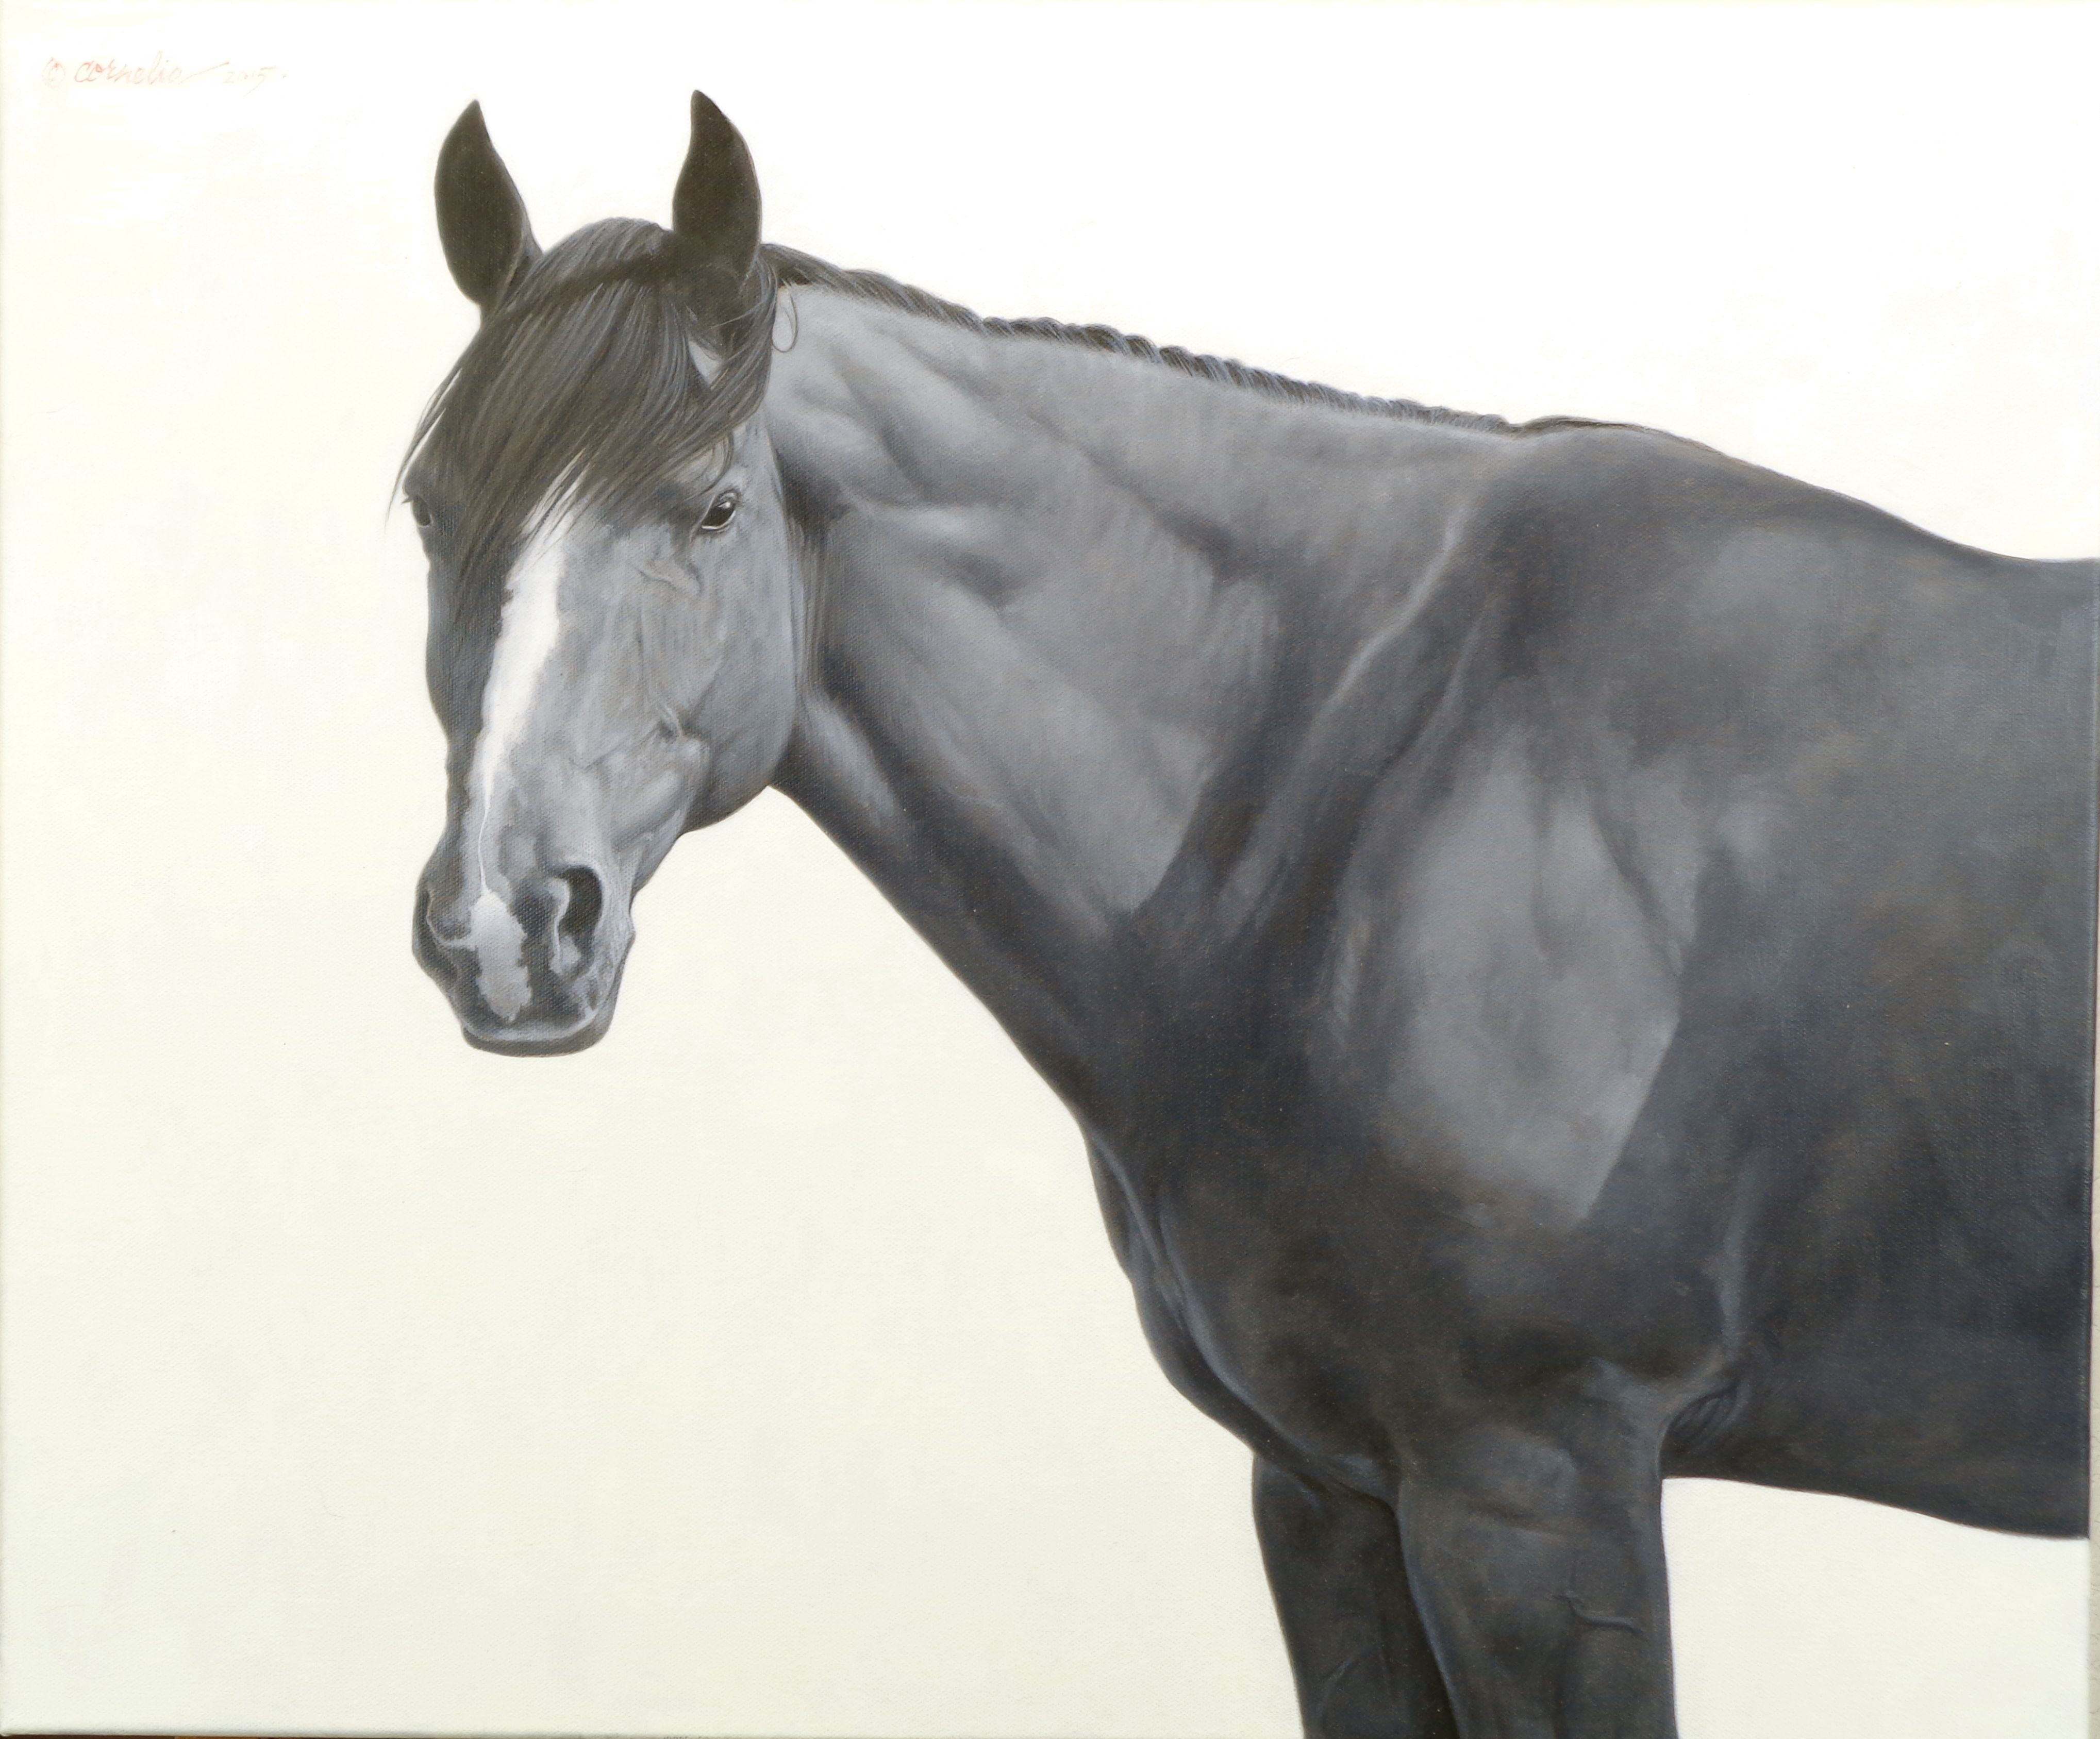 Study For Big Bay Oil On Canvas By Jerry Cornelia Available At The Catherine Louisa Gallery Catherinelouisagallery Com Ho With Images Horse Painting Horse Art Horses